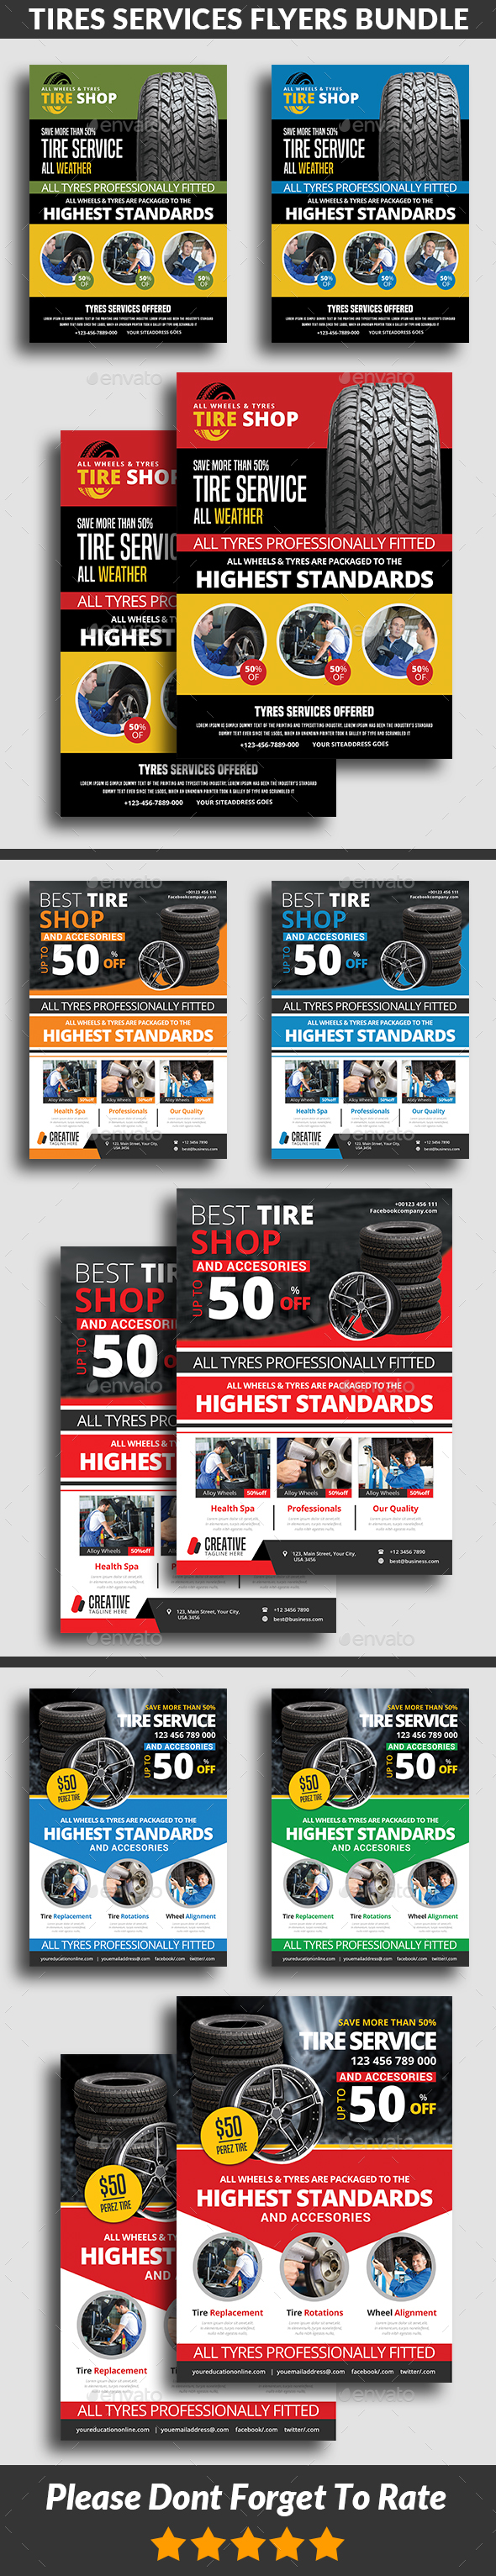 Tires Services Flyers Bundle - Commerce Flyers